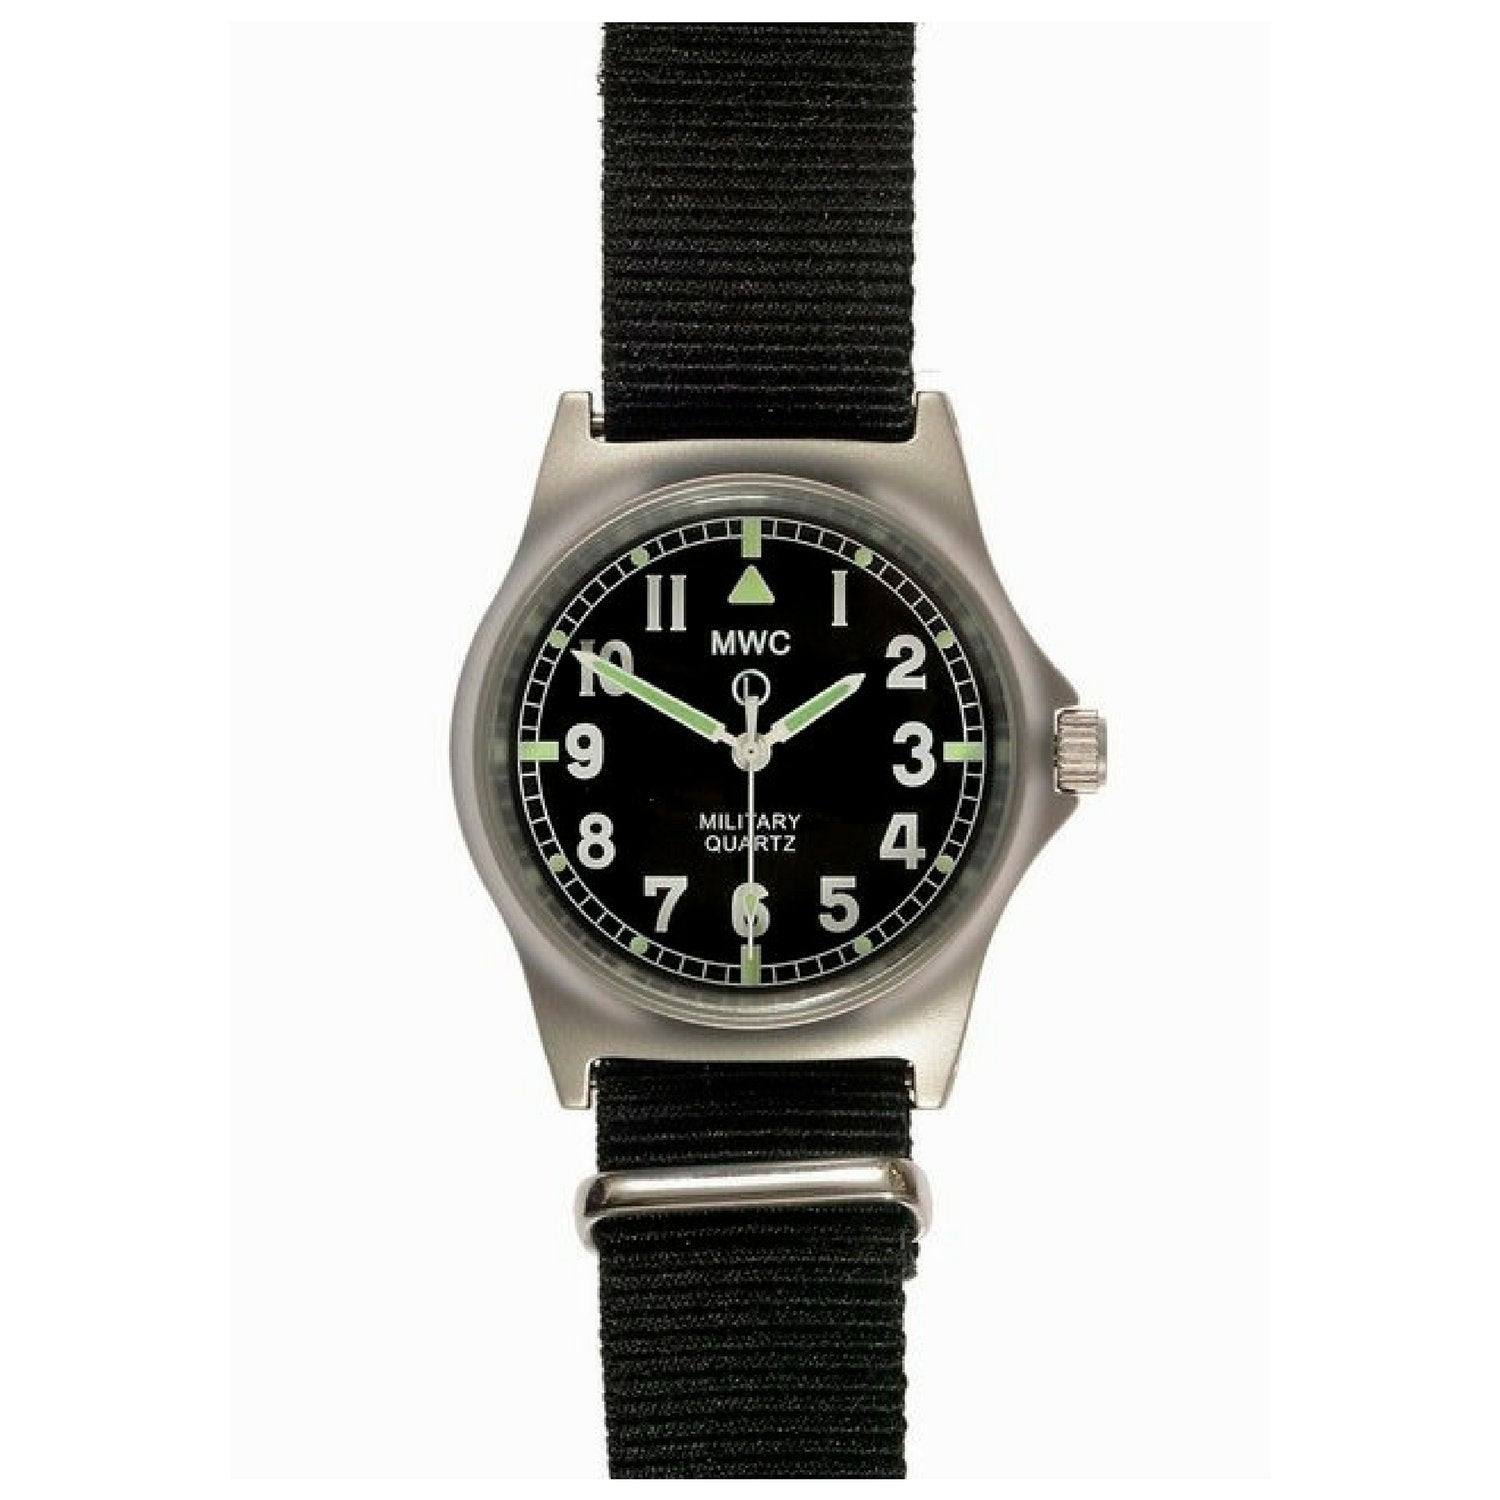 G10 LM Military Watch (Non Date Version)